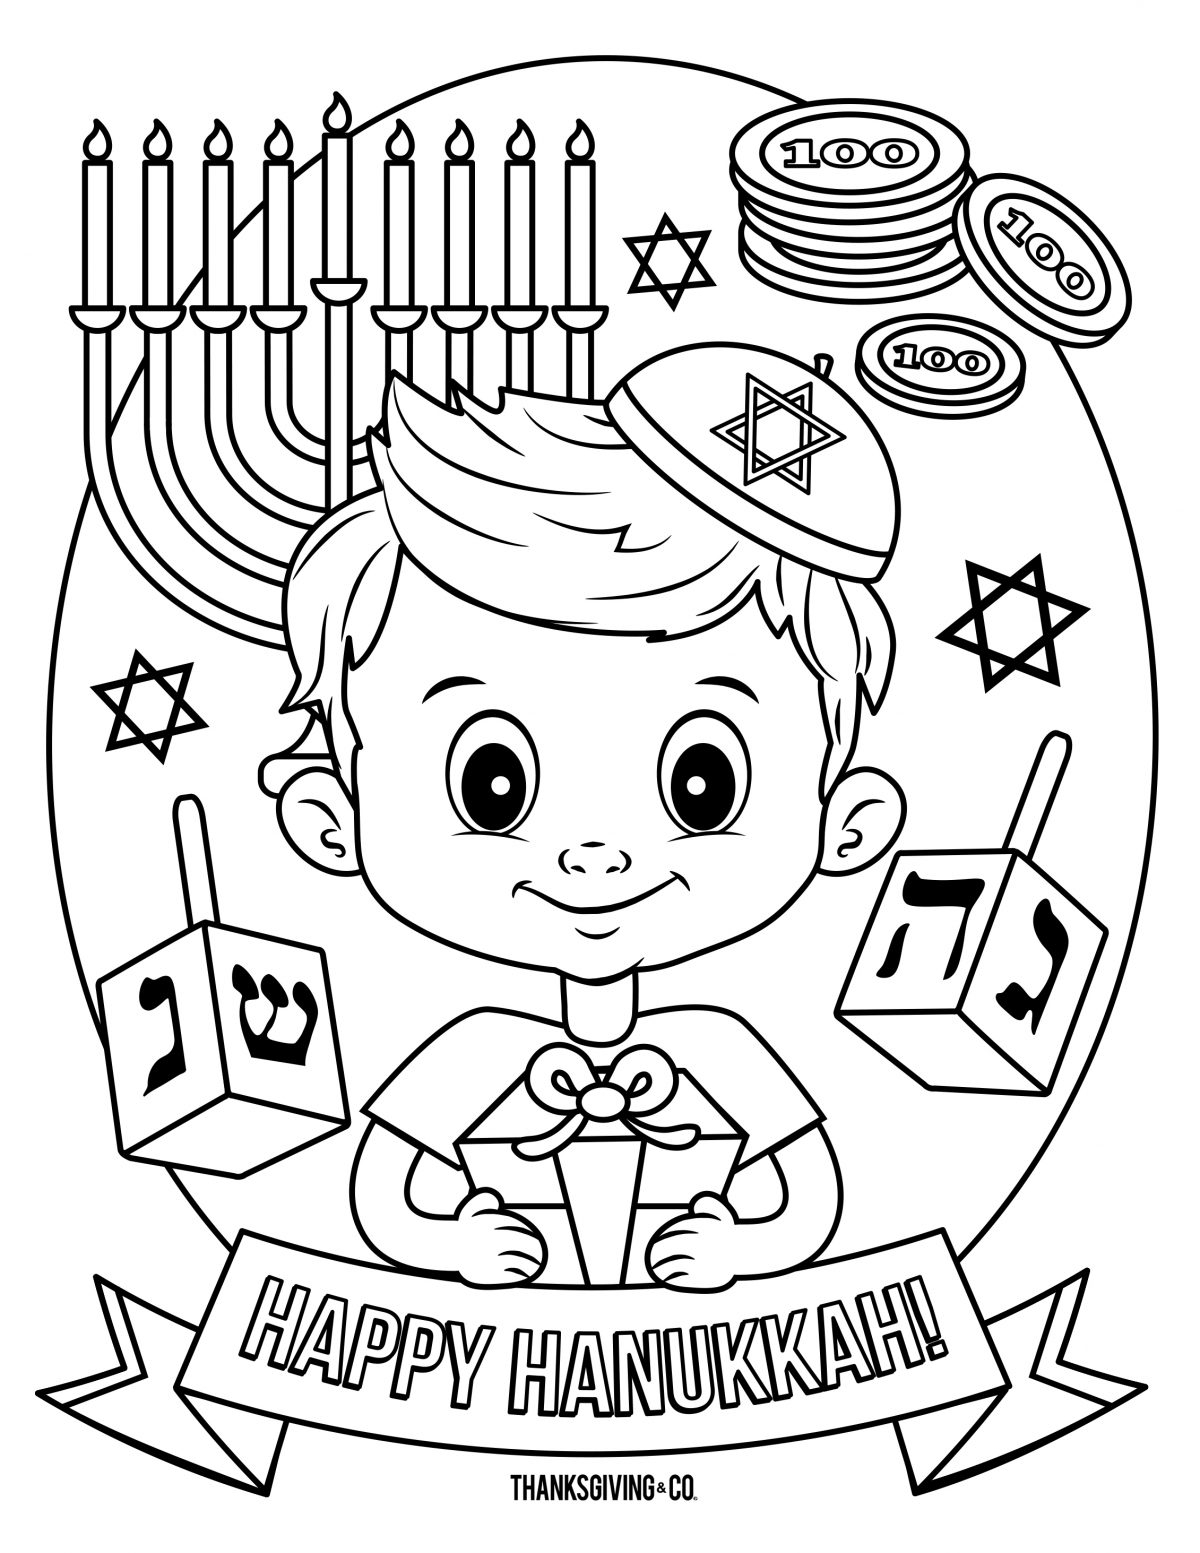 Hanukkah Coloring Pages 4 Hanukkah Coloring Pages You Can Print And